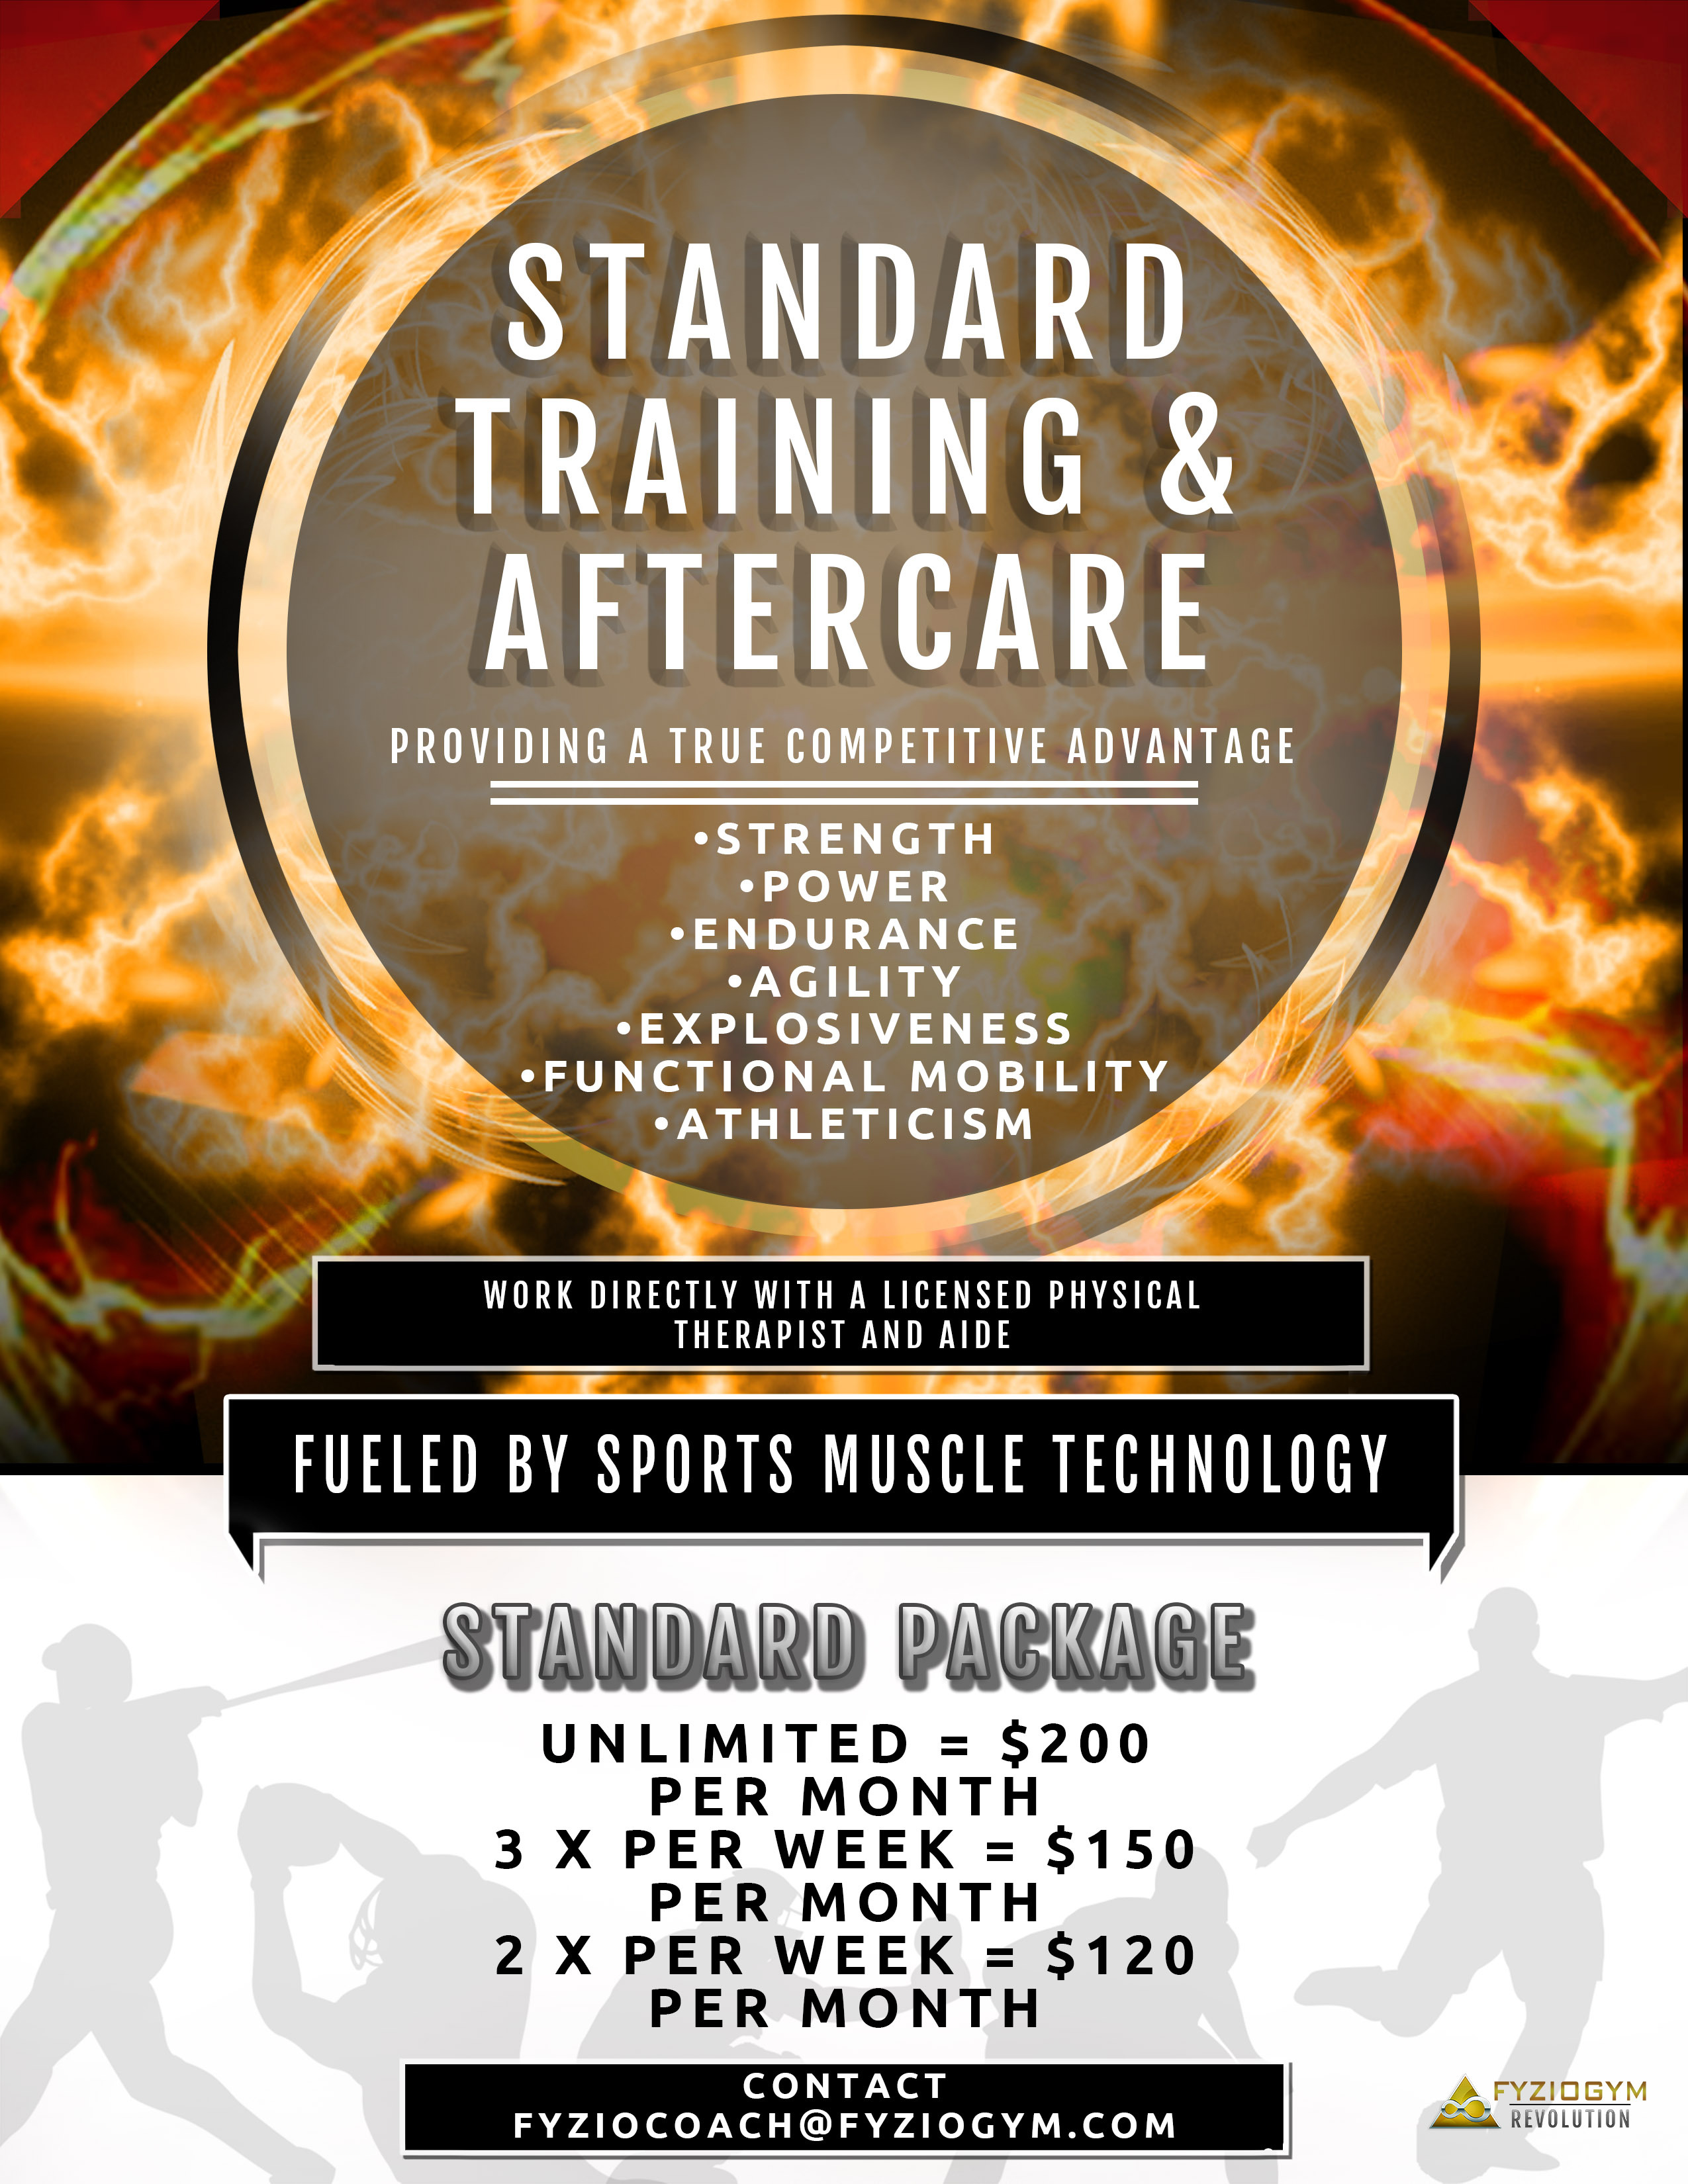 Standard Training & Aftercare 00010